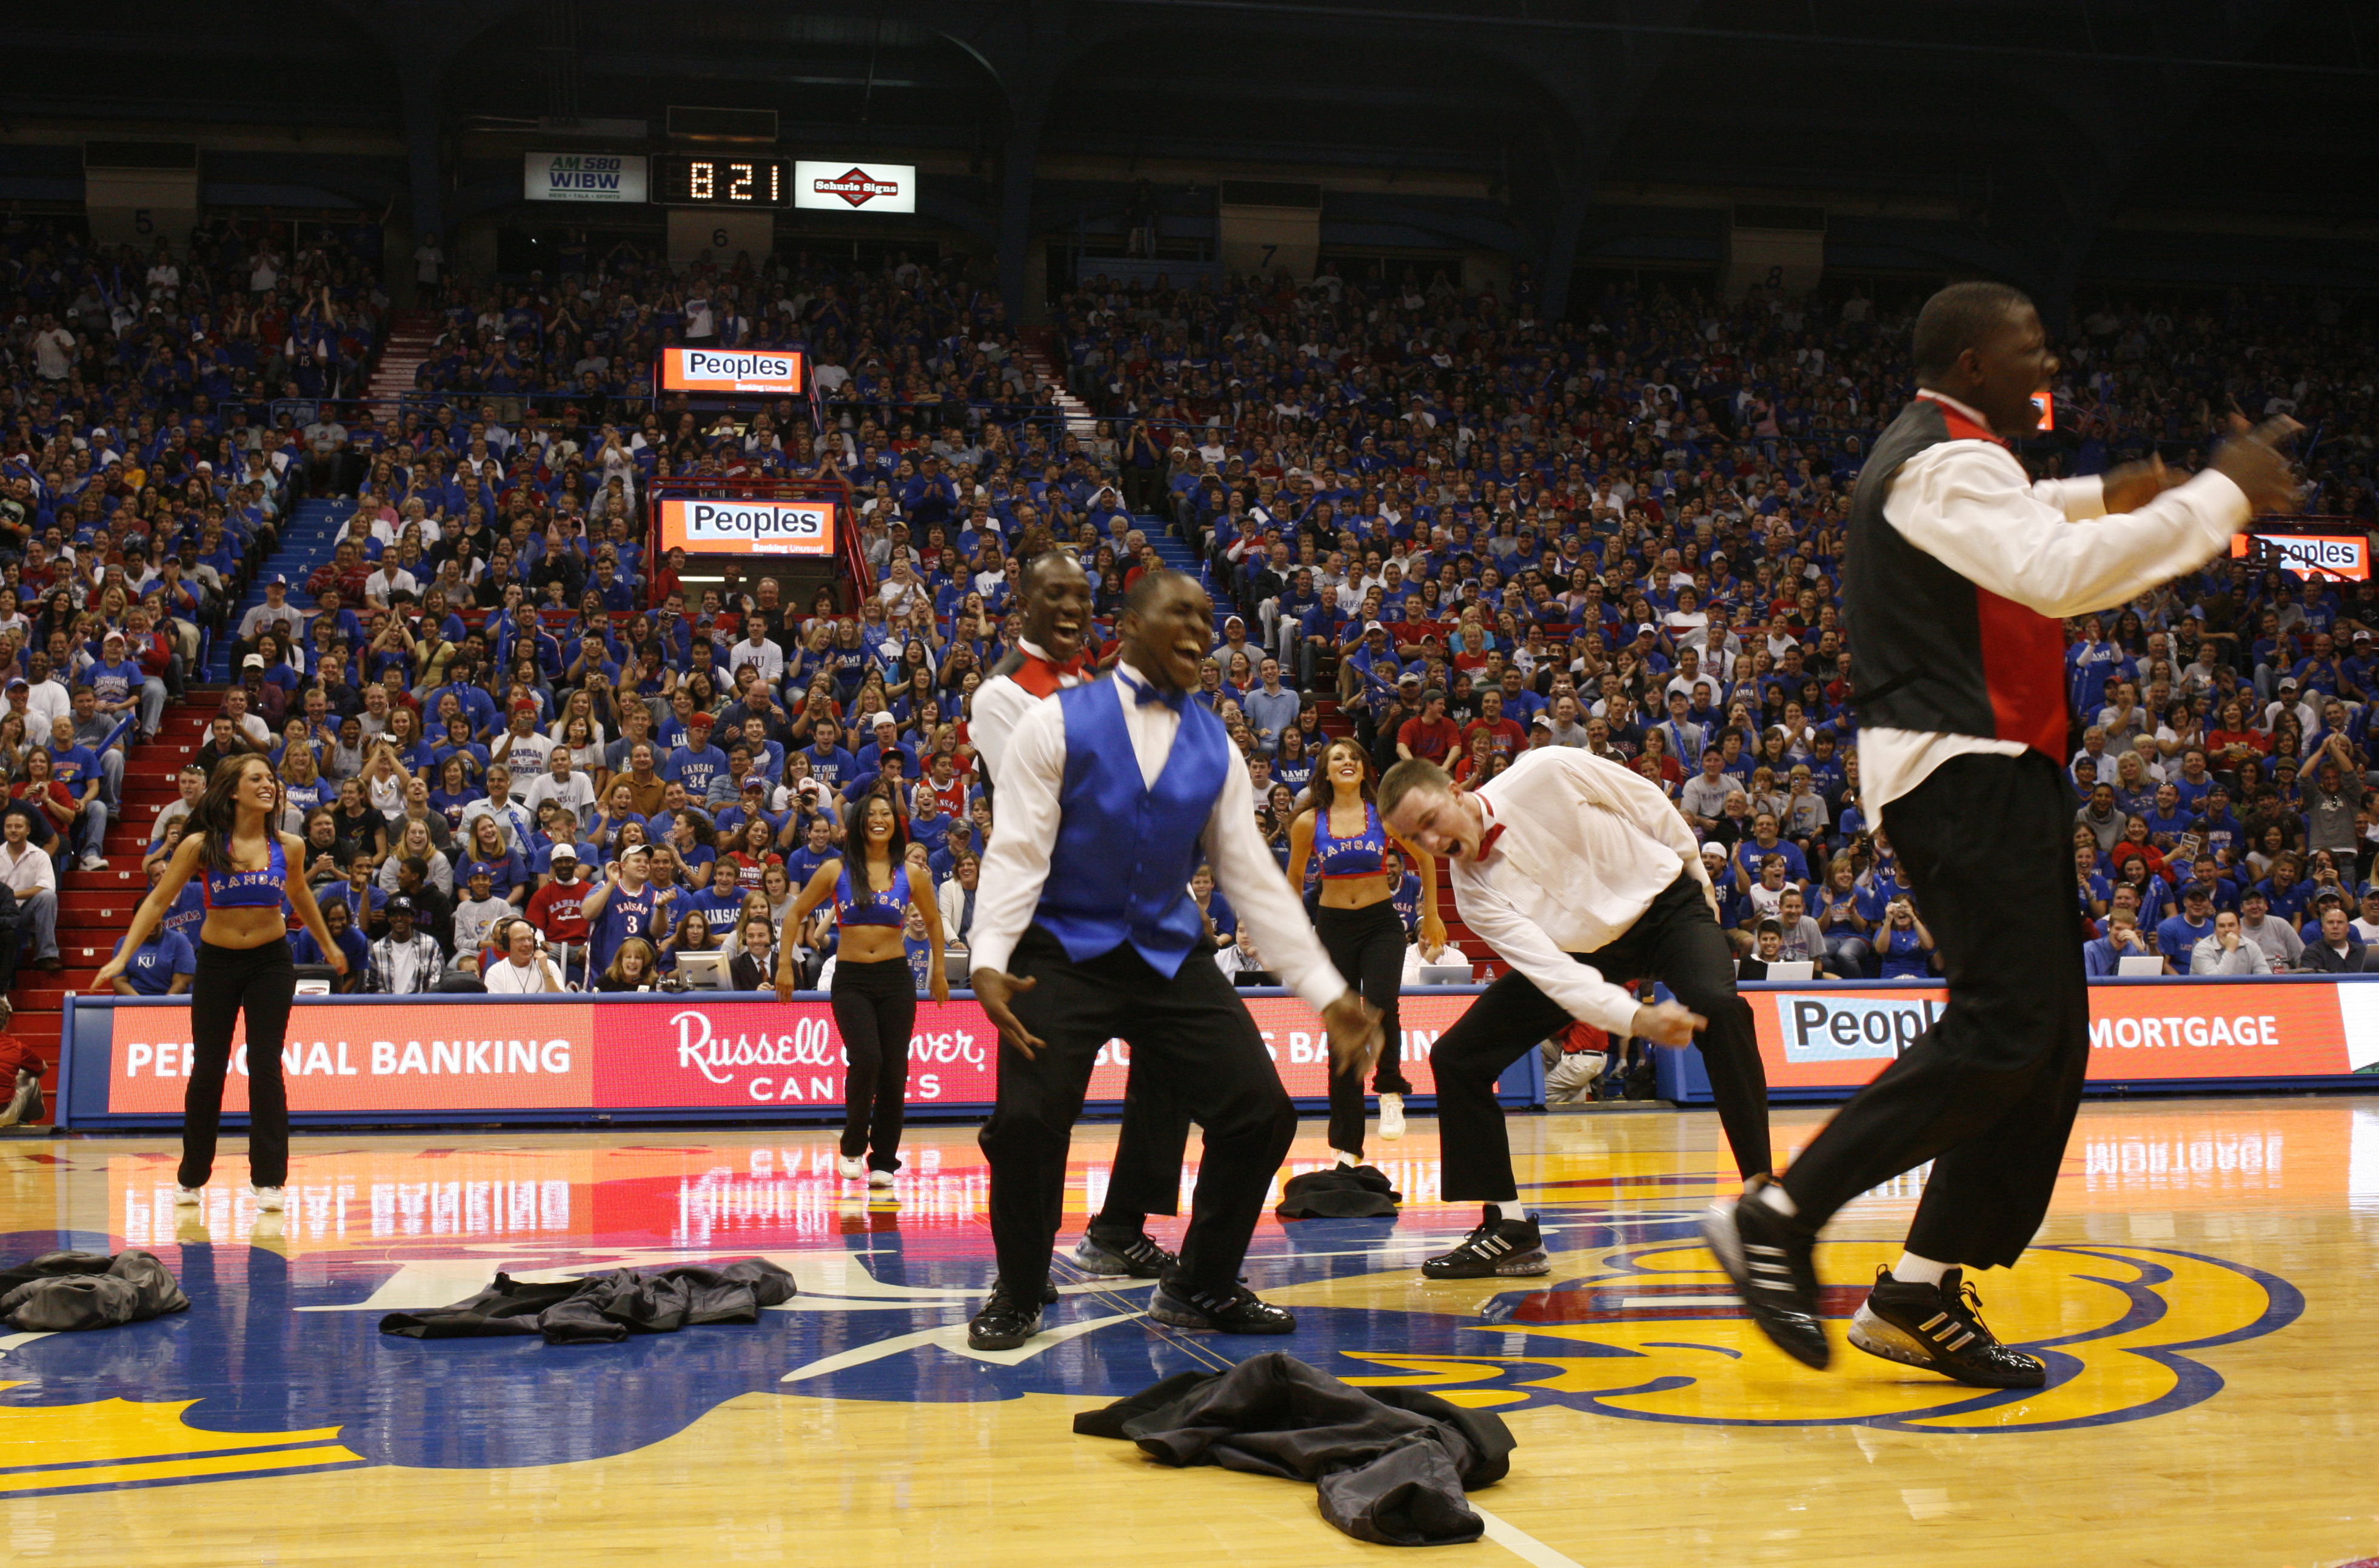 Espnu To Televise Uk Basketball Practice: Late Night In The Phog To Be Featured On ESPNU